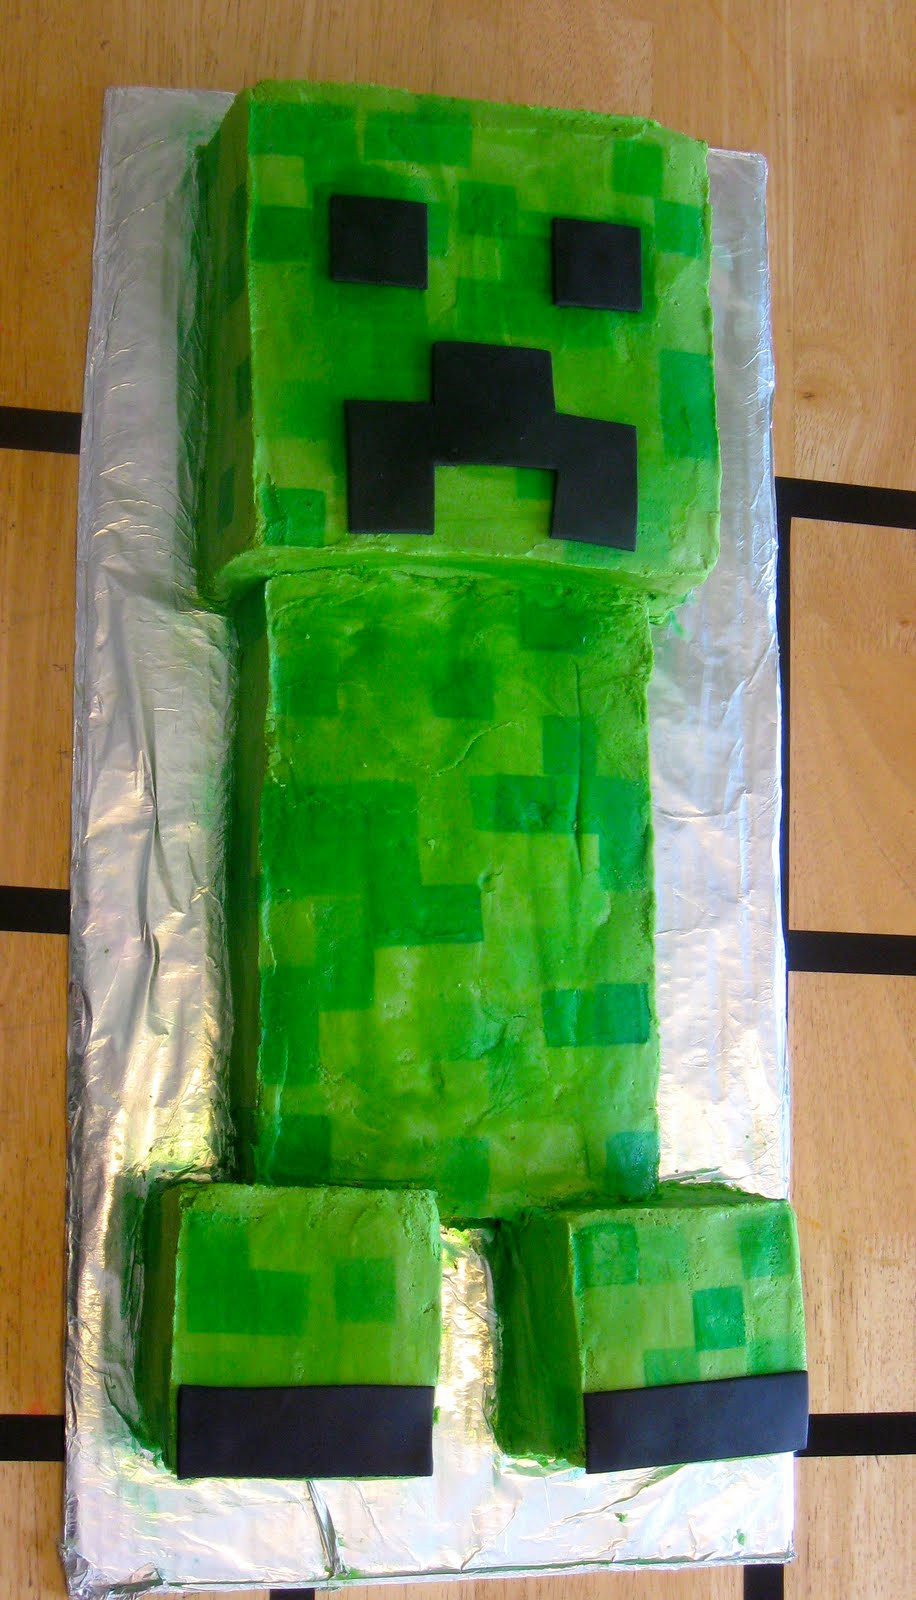 Best ideas about Minecraft Birthday Cake . Save or Pin the mama A Minecraft Birthday Now.